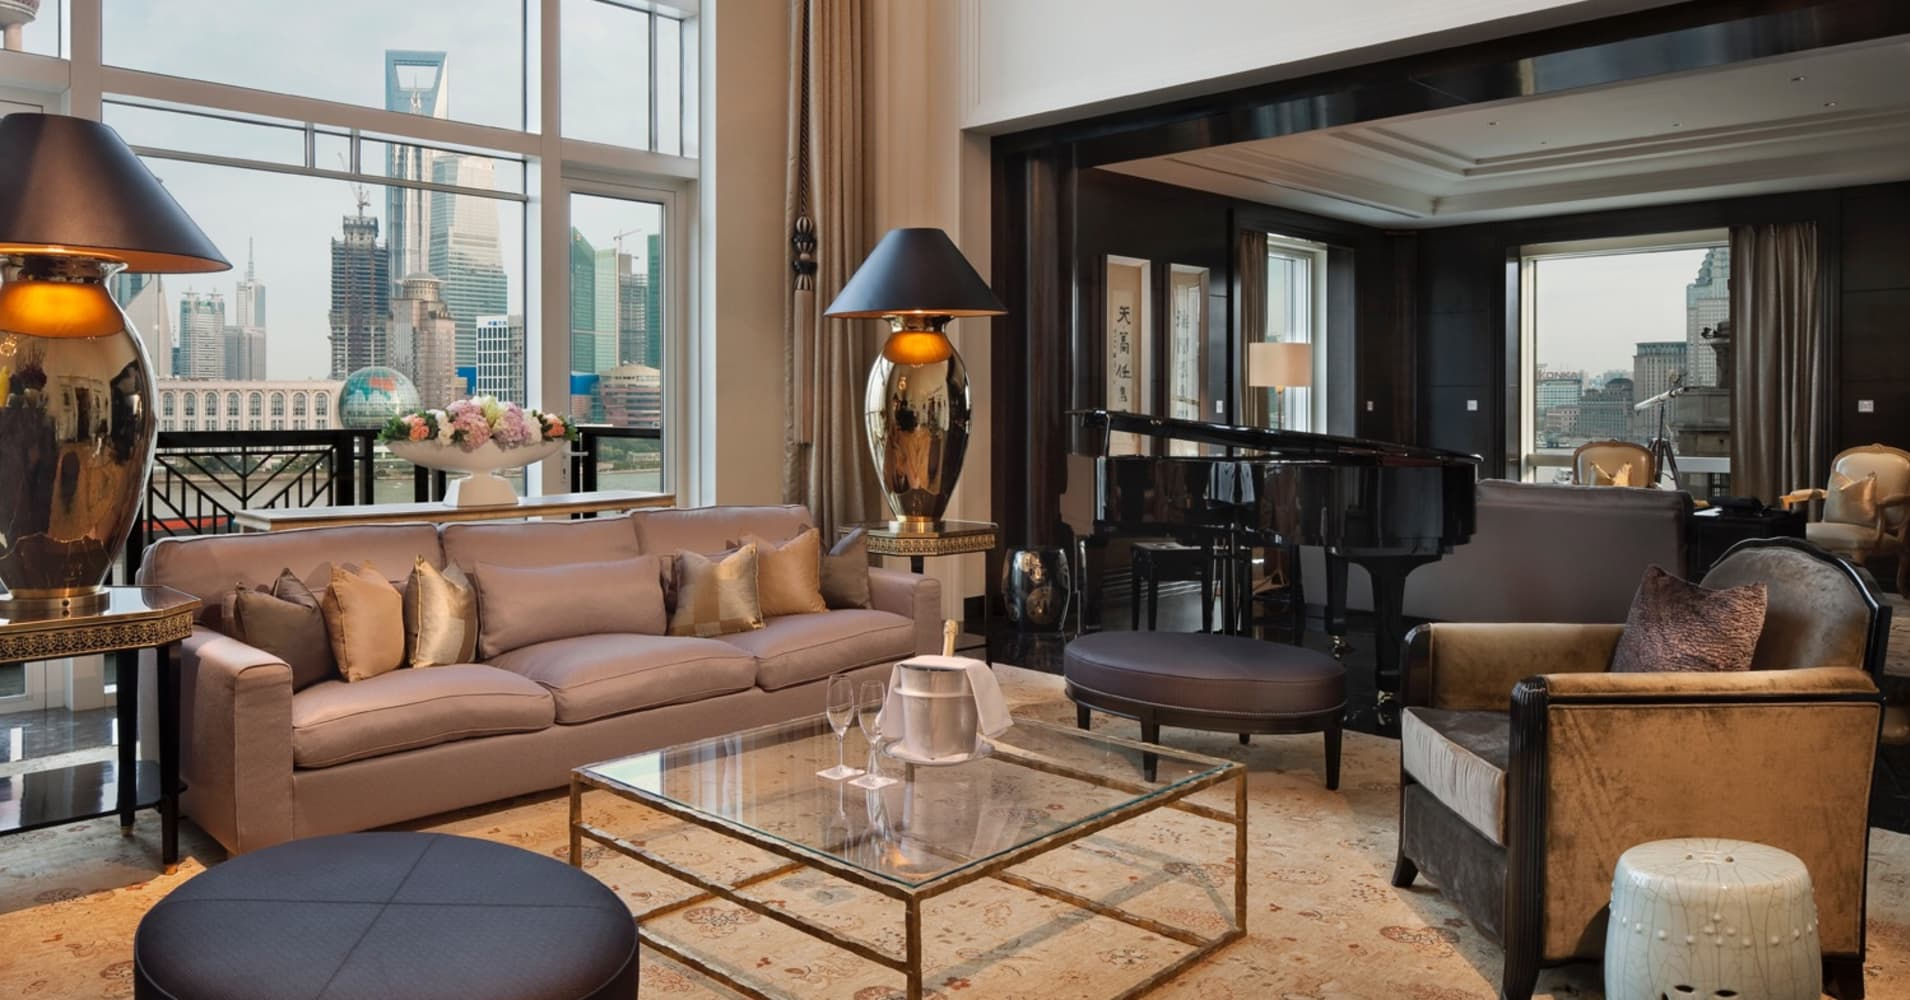 $22,000 per night will get you this Shanghai luxury hotel suite